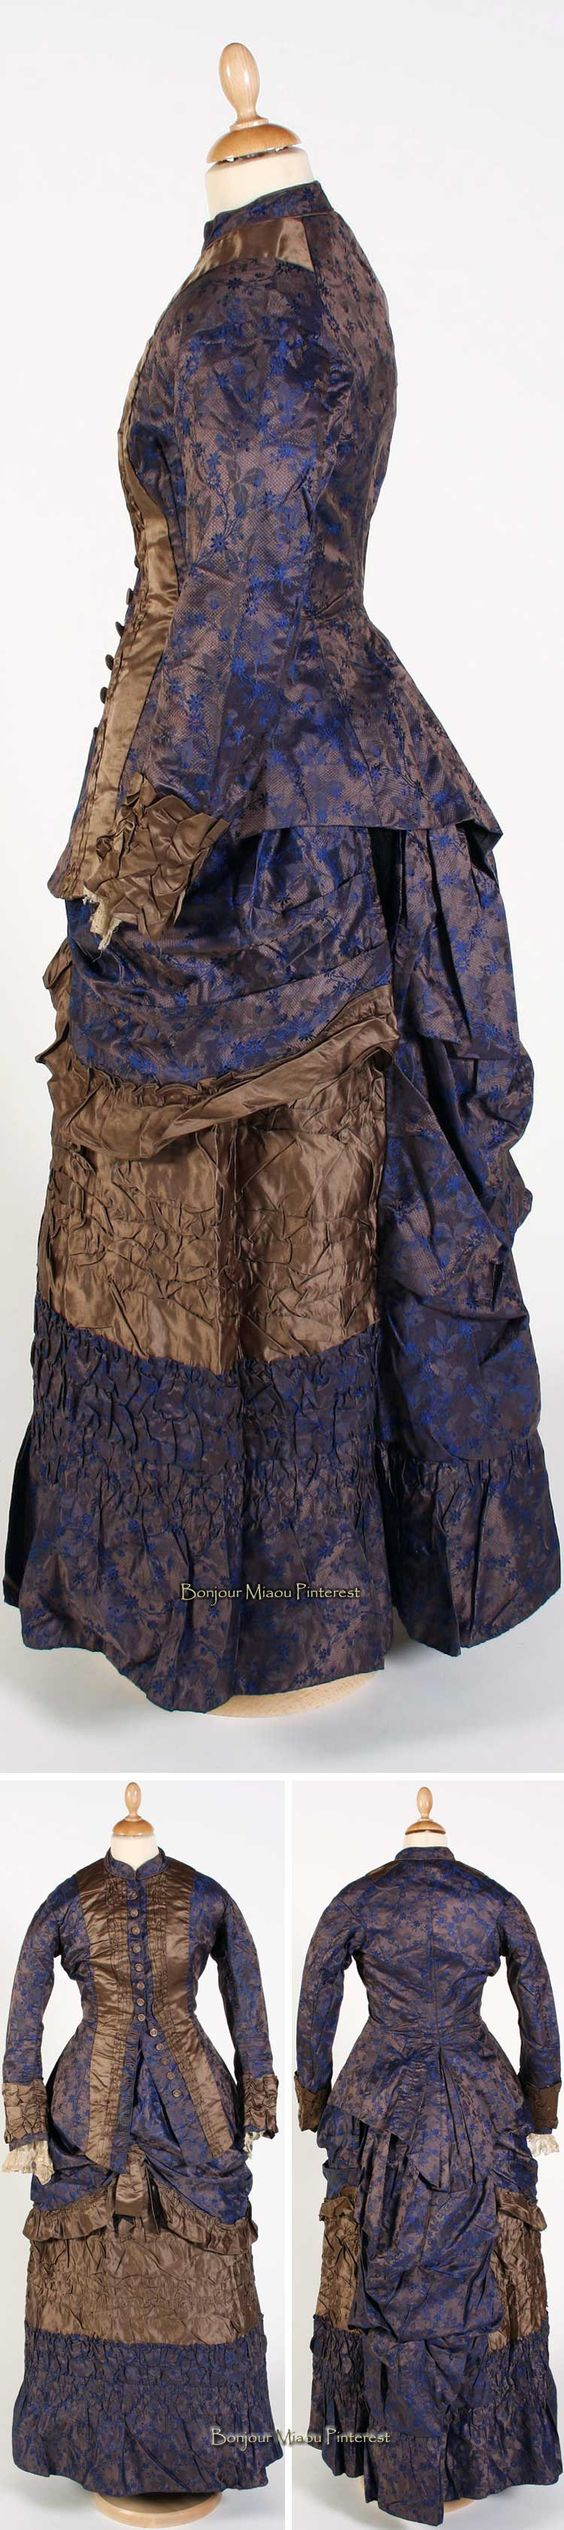 Day dress ca. 1880. Blue & gold floral brocade with bustle back. Golden brown rouged silk trim at cuffs & front of bodice, which fastens center front with long line of covered buttons. Skirt tiers in contrasting fabric; silk with a bow at center front. Bonhams